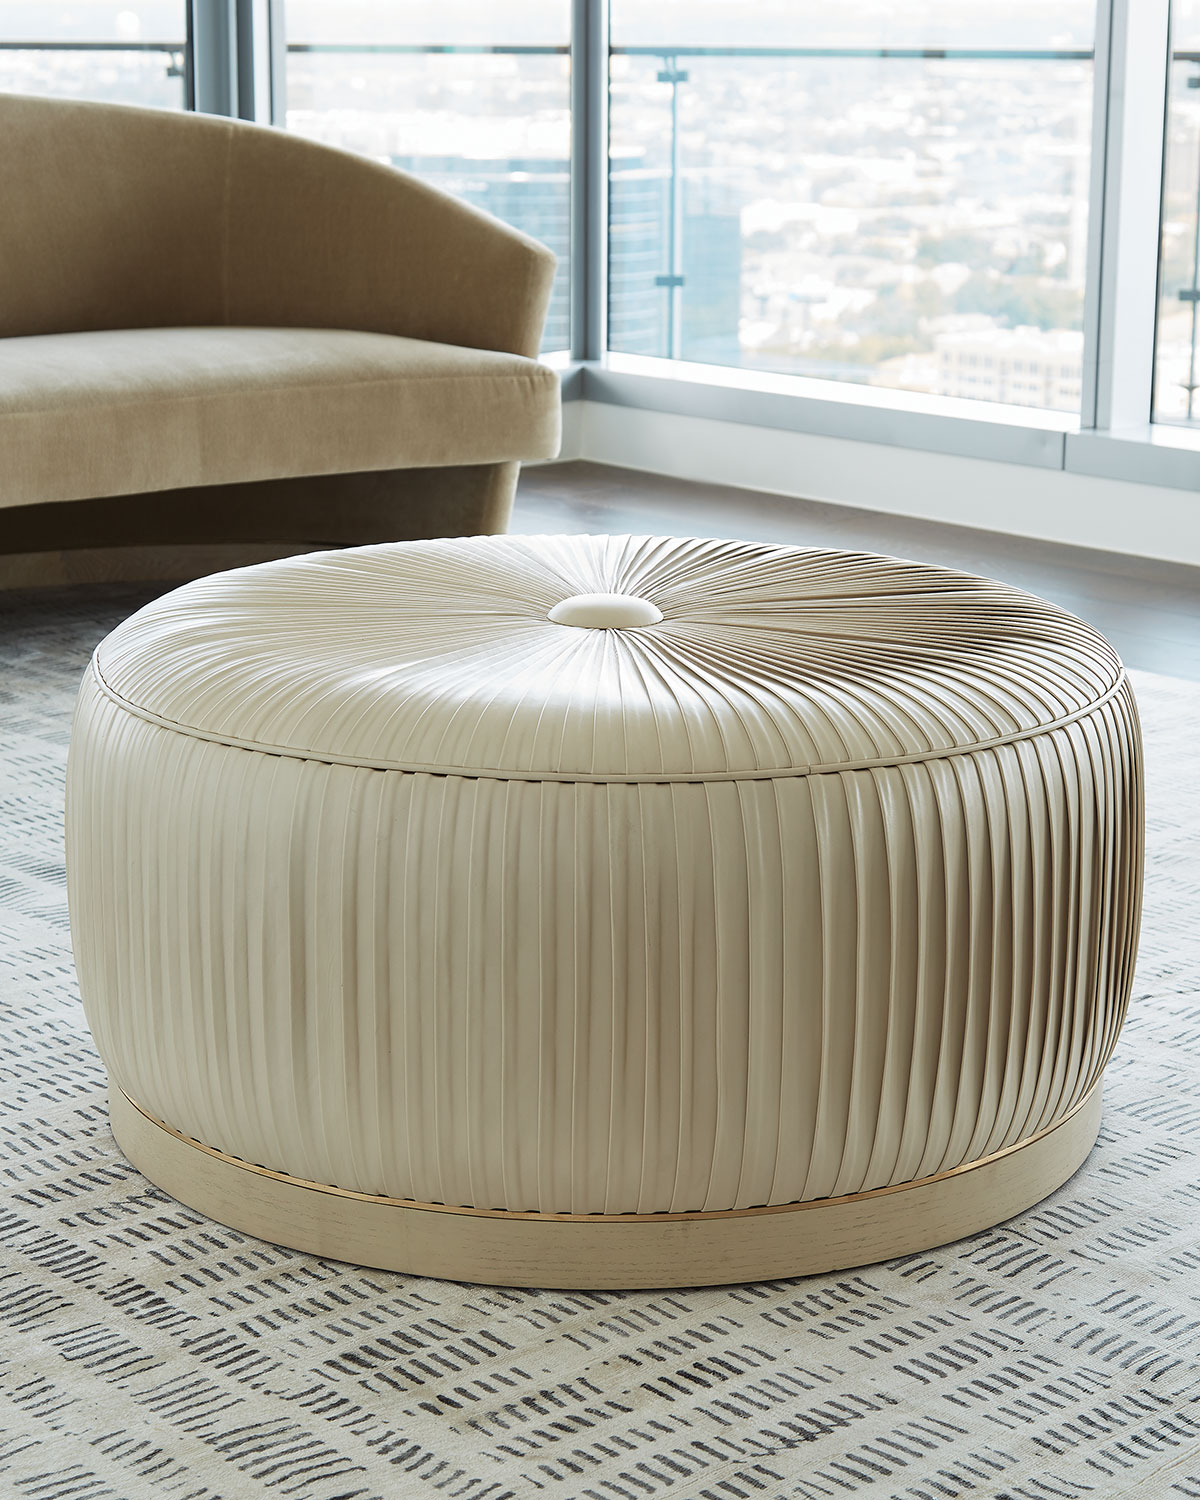 Form Design Studio By Global Views Colette Pleated Leather Ottoman Neiman Marcus